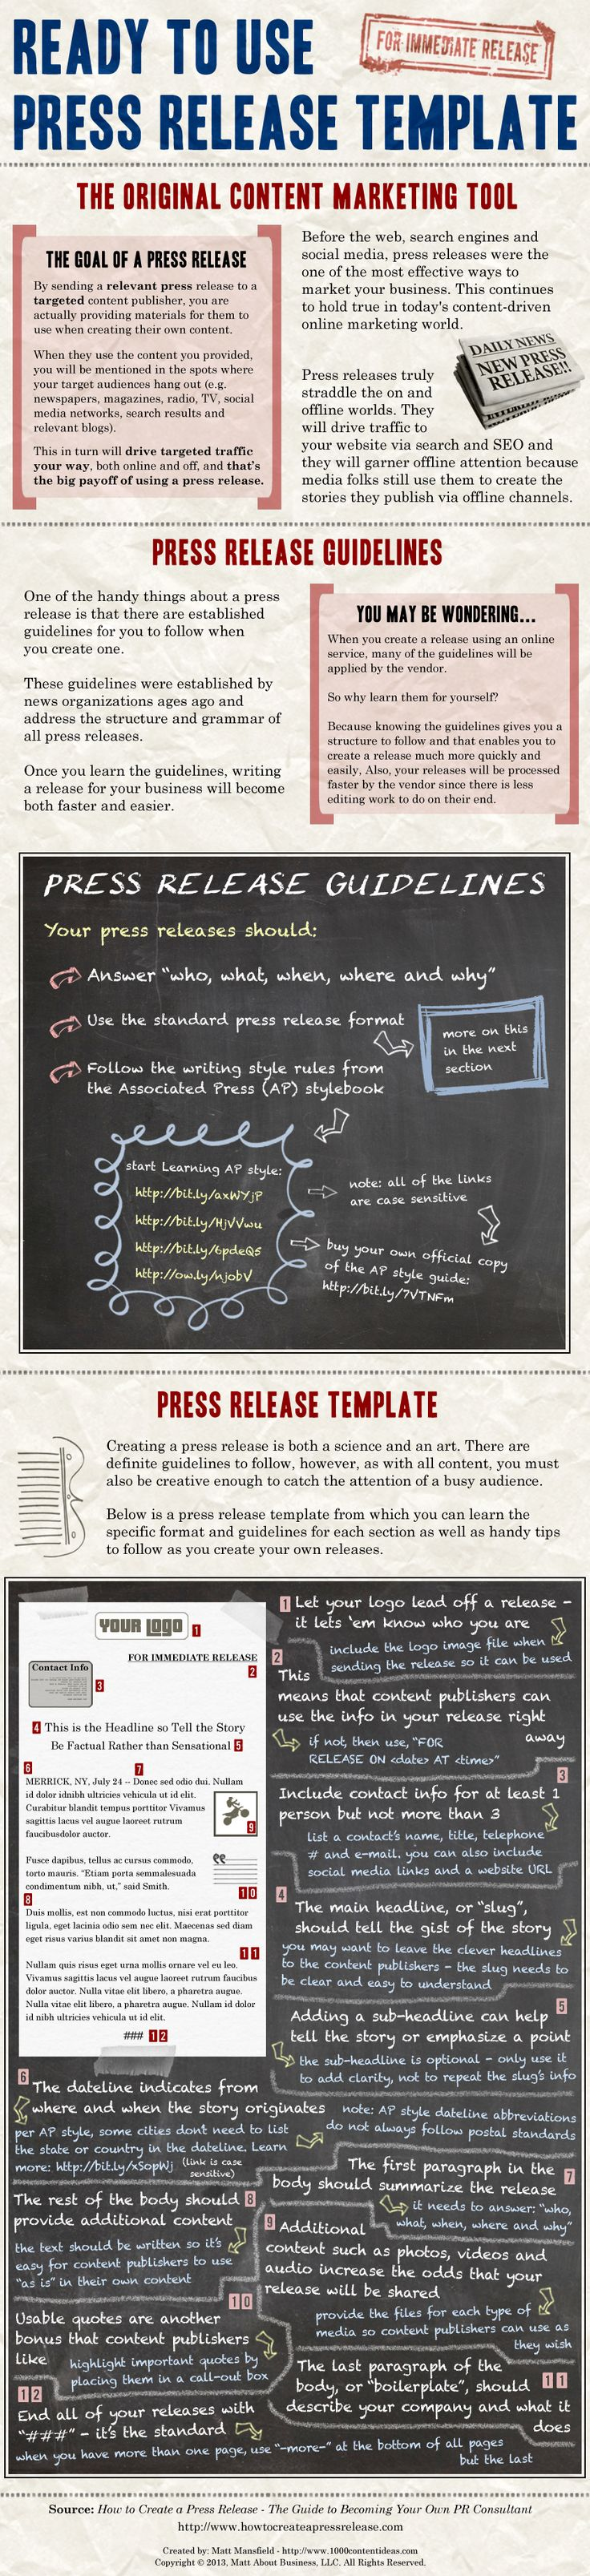 Ready to Use Press Release Template